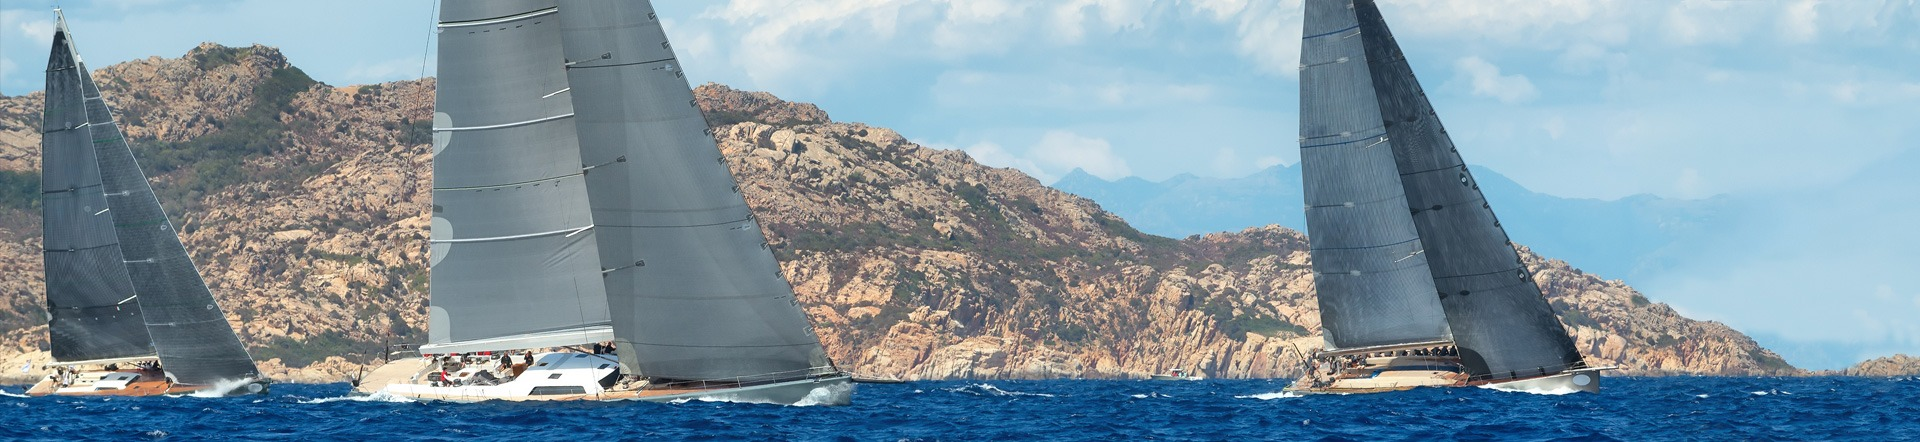 race yacht charter, crewed race charter regatta